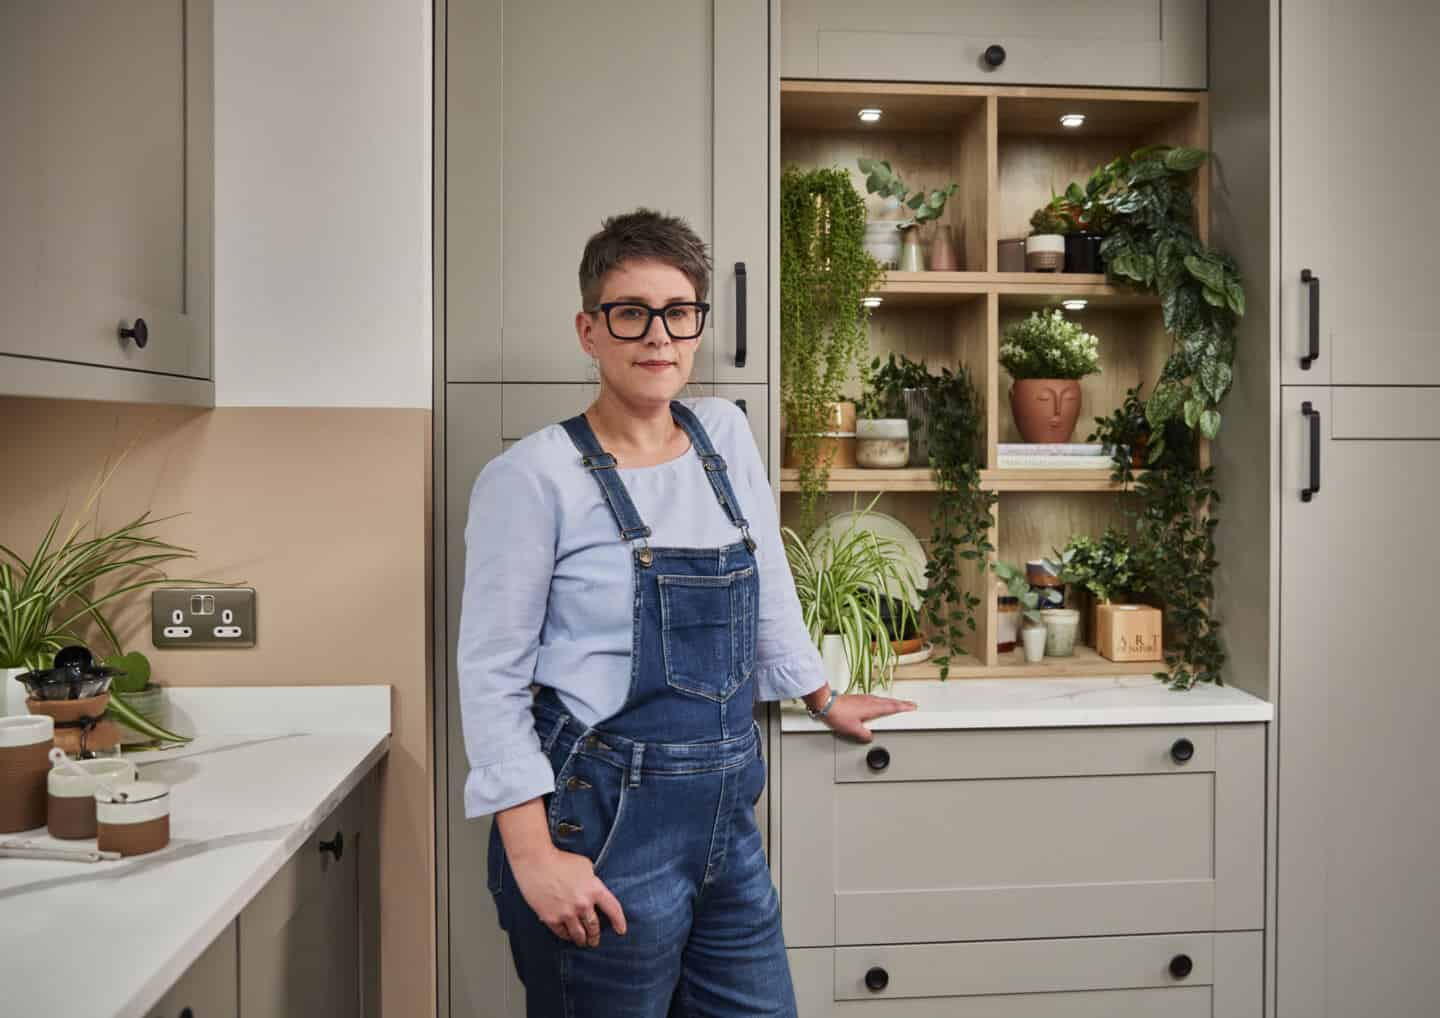 Award-winning Interior Design Blogger Stacey Sheppard stood in the Tatton Pebble Kitchen from Magnet Kitchens.